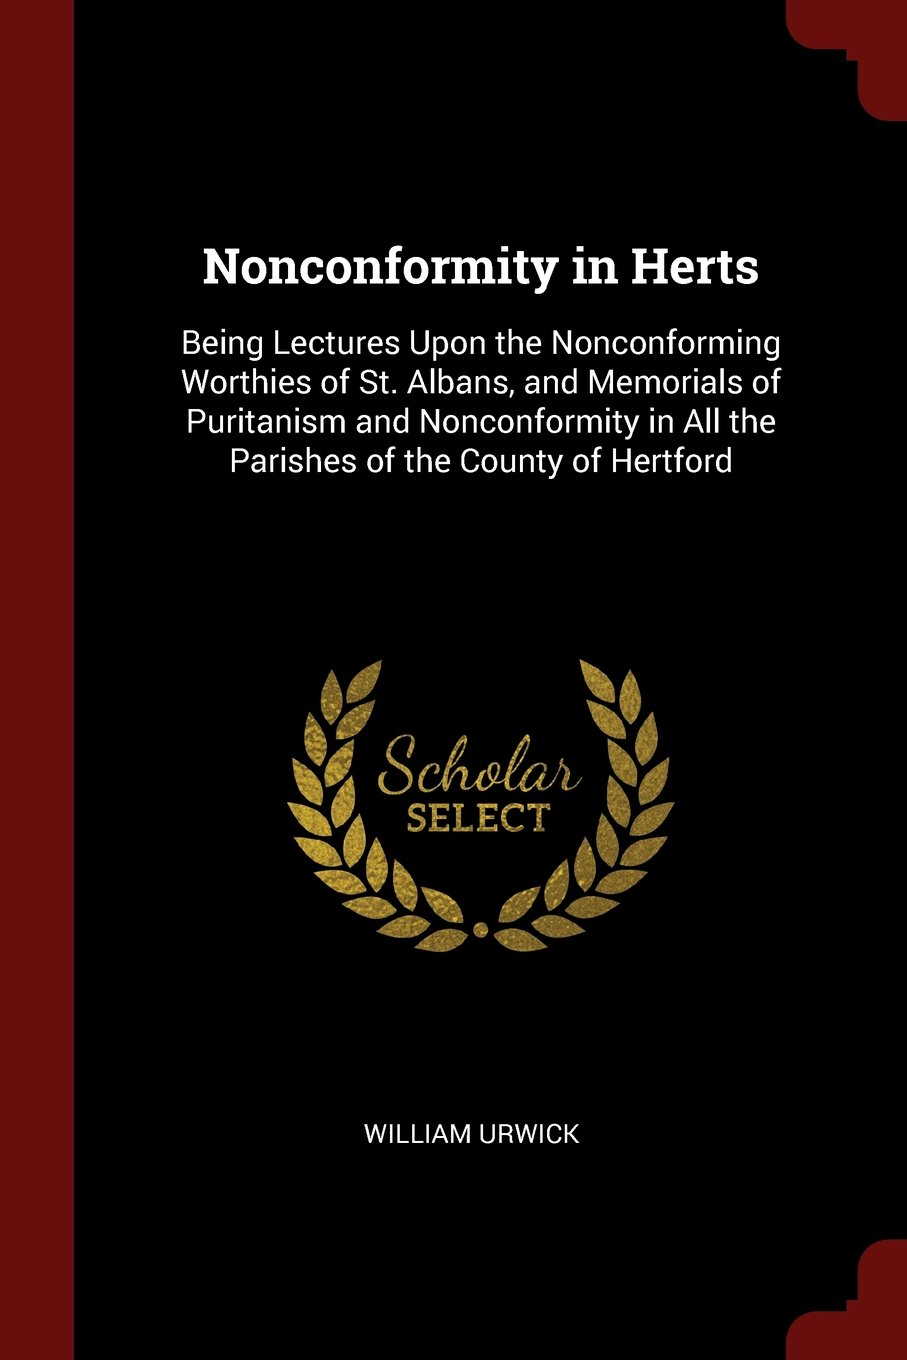 Download Nonconformity in Herts: Being Lectures Upon the Nonconforming Worthies of St. Albans, and Memorials of Puritanism and Nonconformity in All the Parishes of the County of Hertford ebook